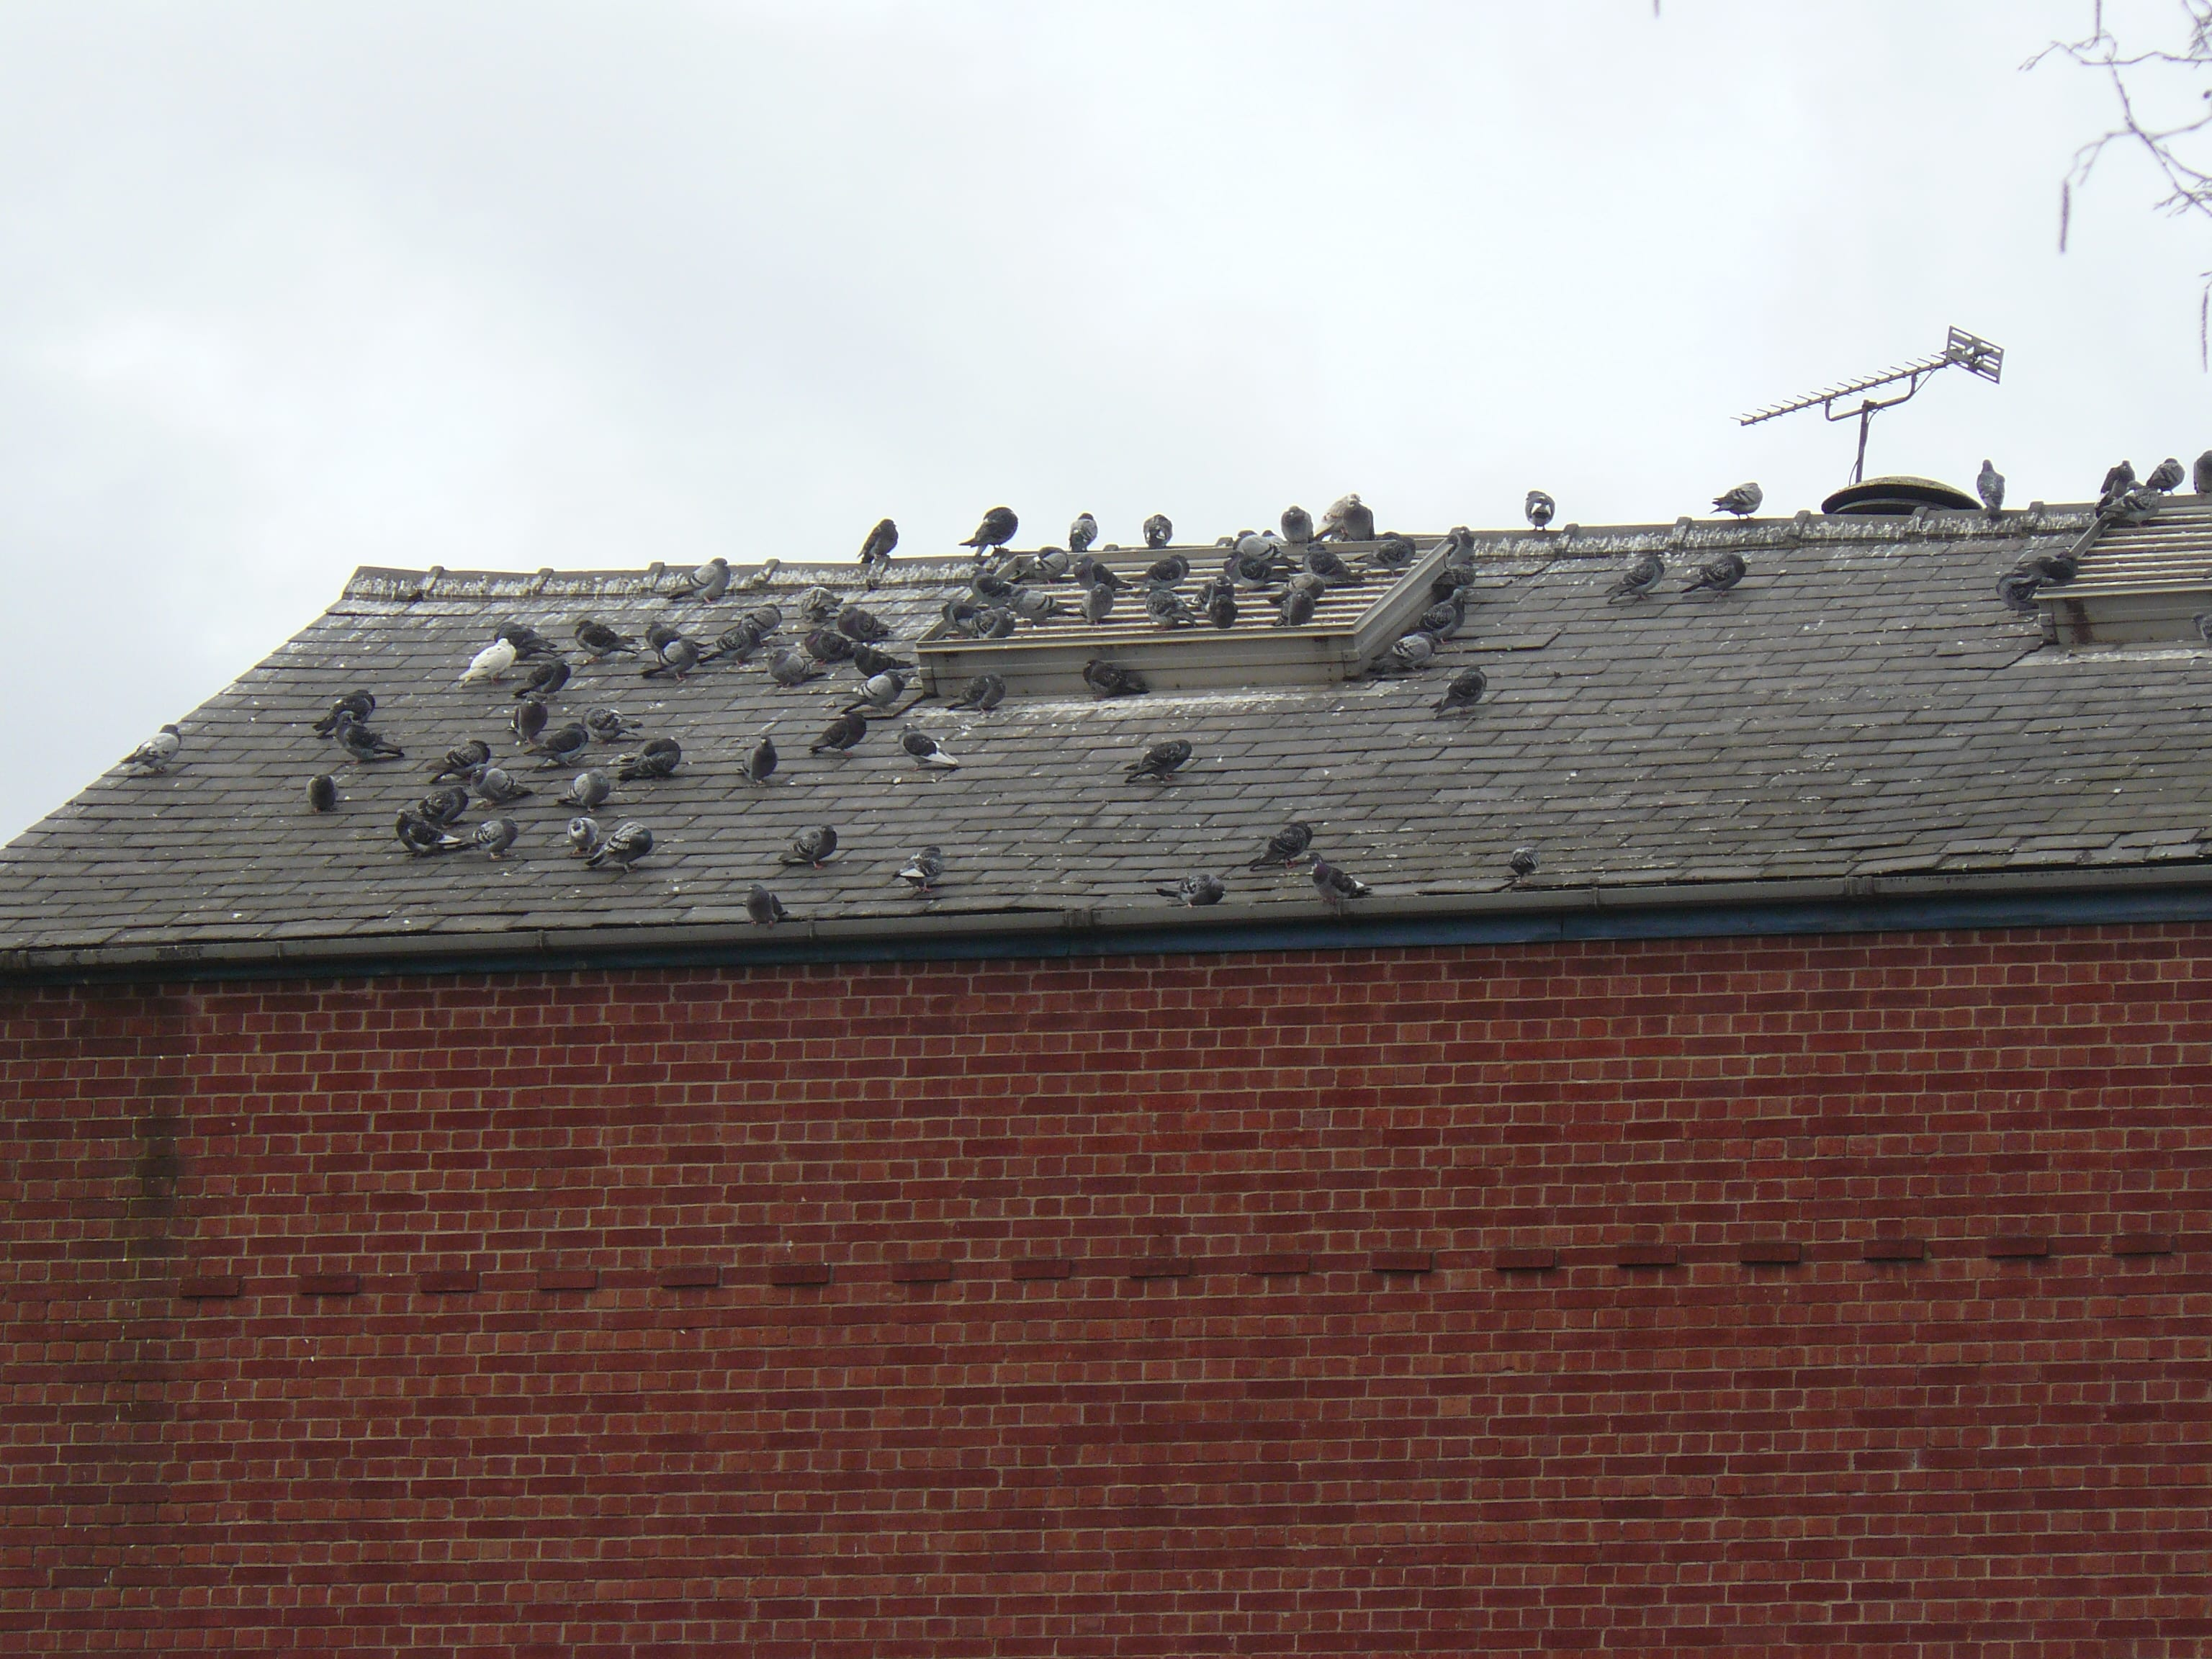 Pigeons on the roof, alas.